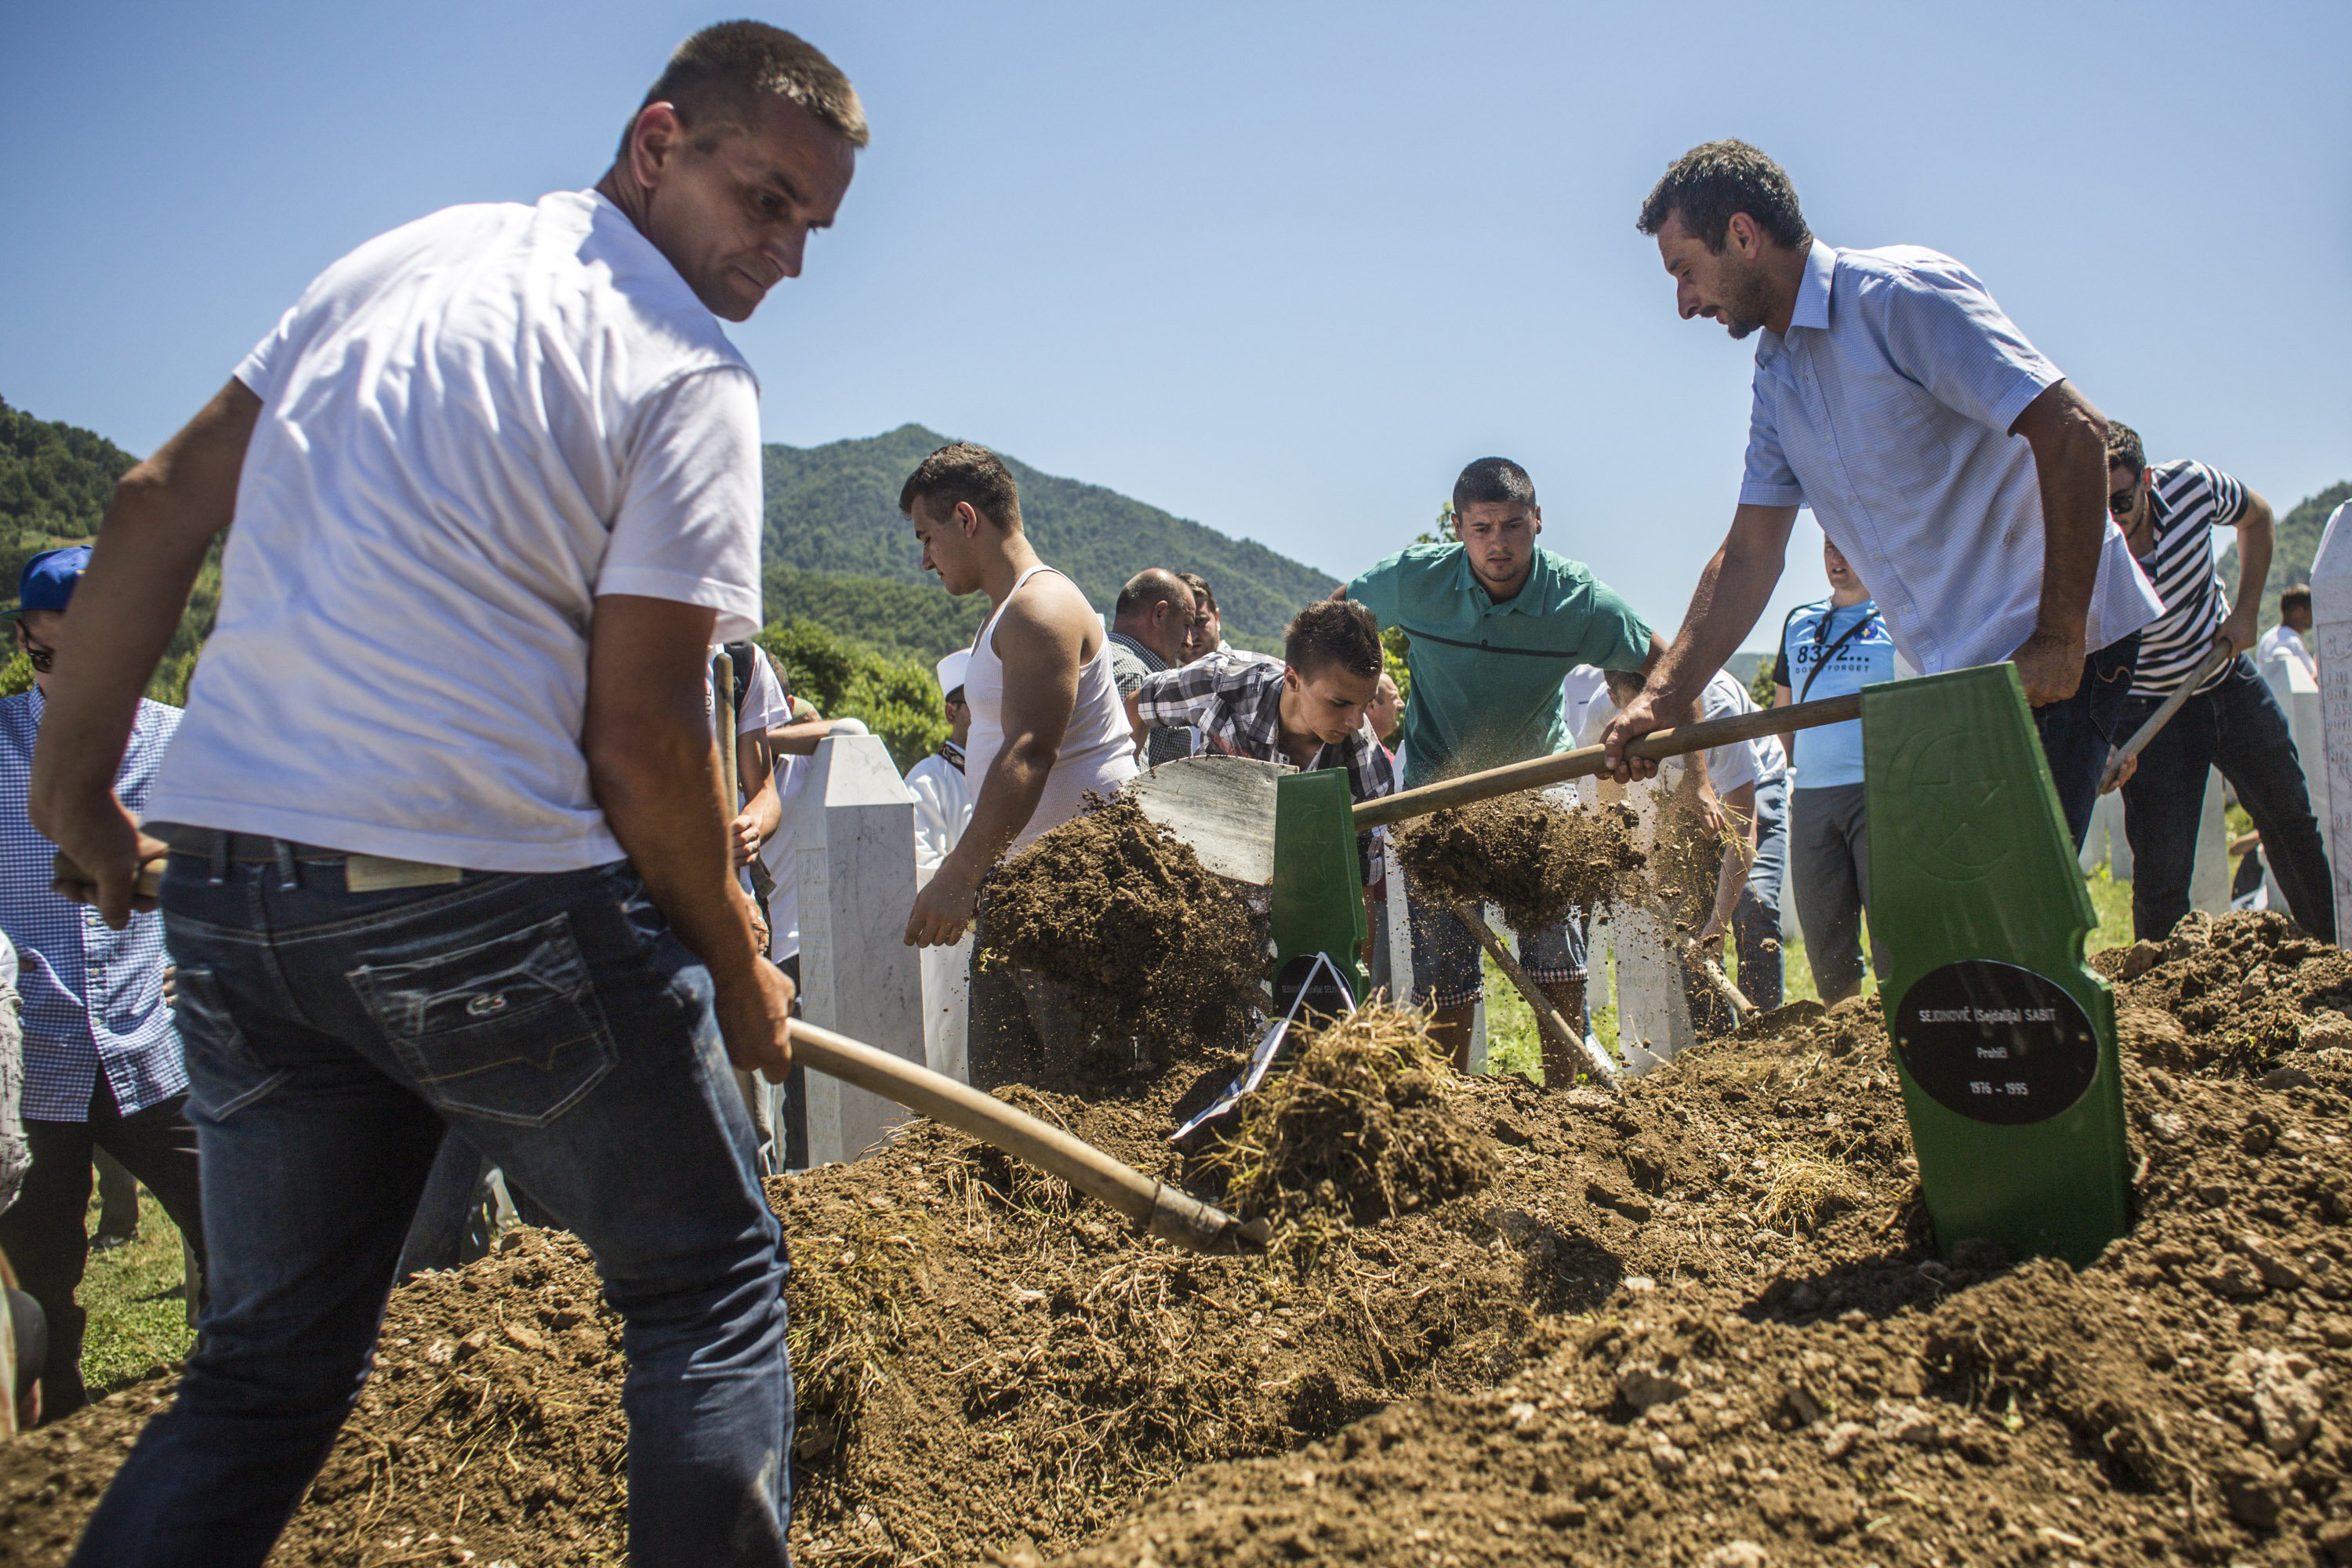 Family members and volunteers bury one of the 136 coffins of newly-identified victims of the 1995 Srebrenica massacre at the Potocari cemetery and memorial on July 11, 2015 in Srebrenica, Bosnia.